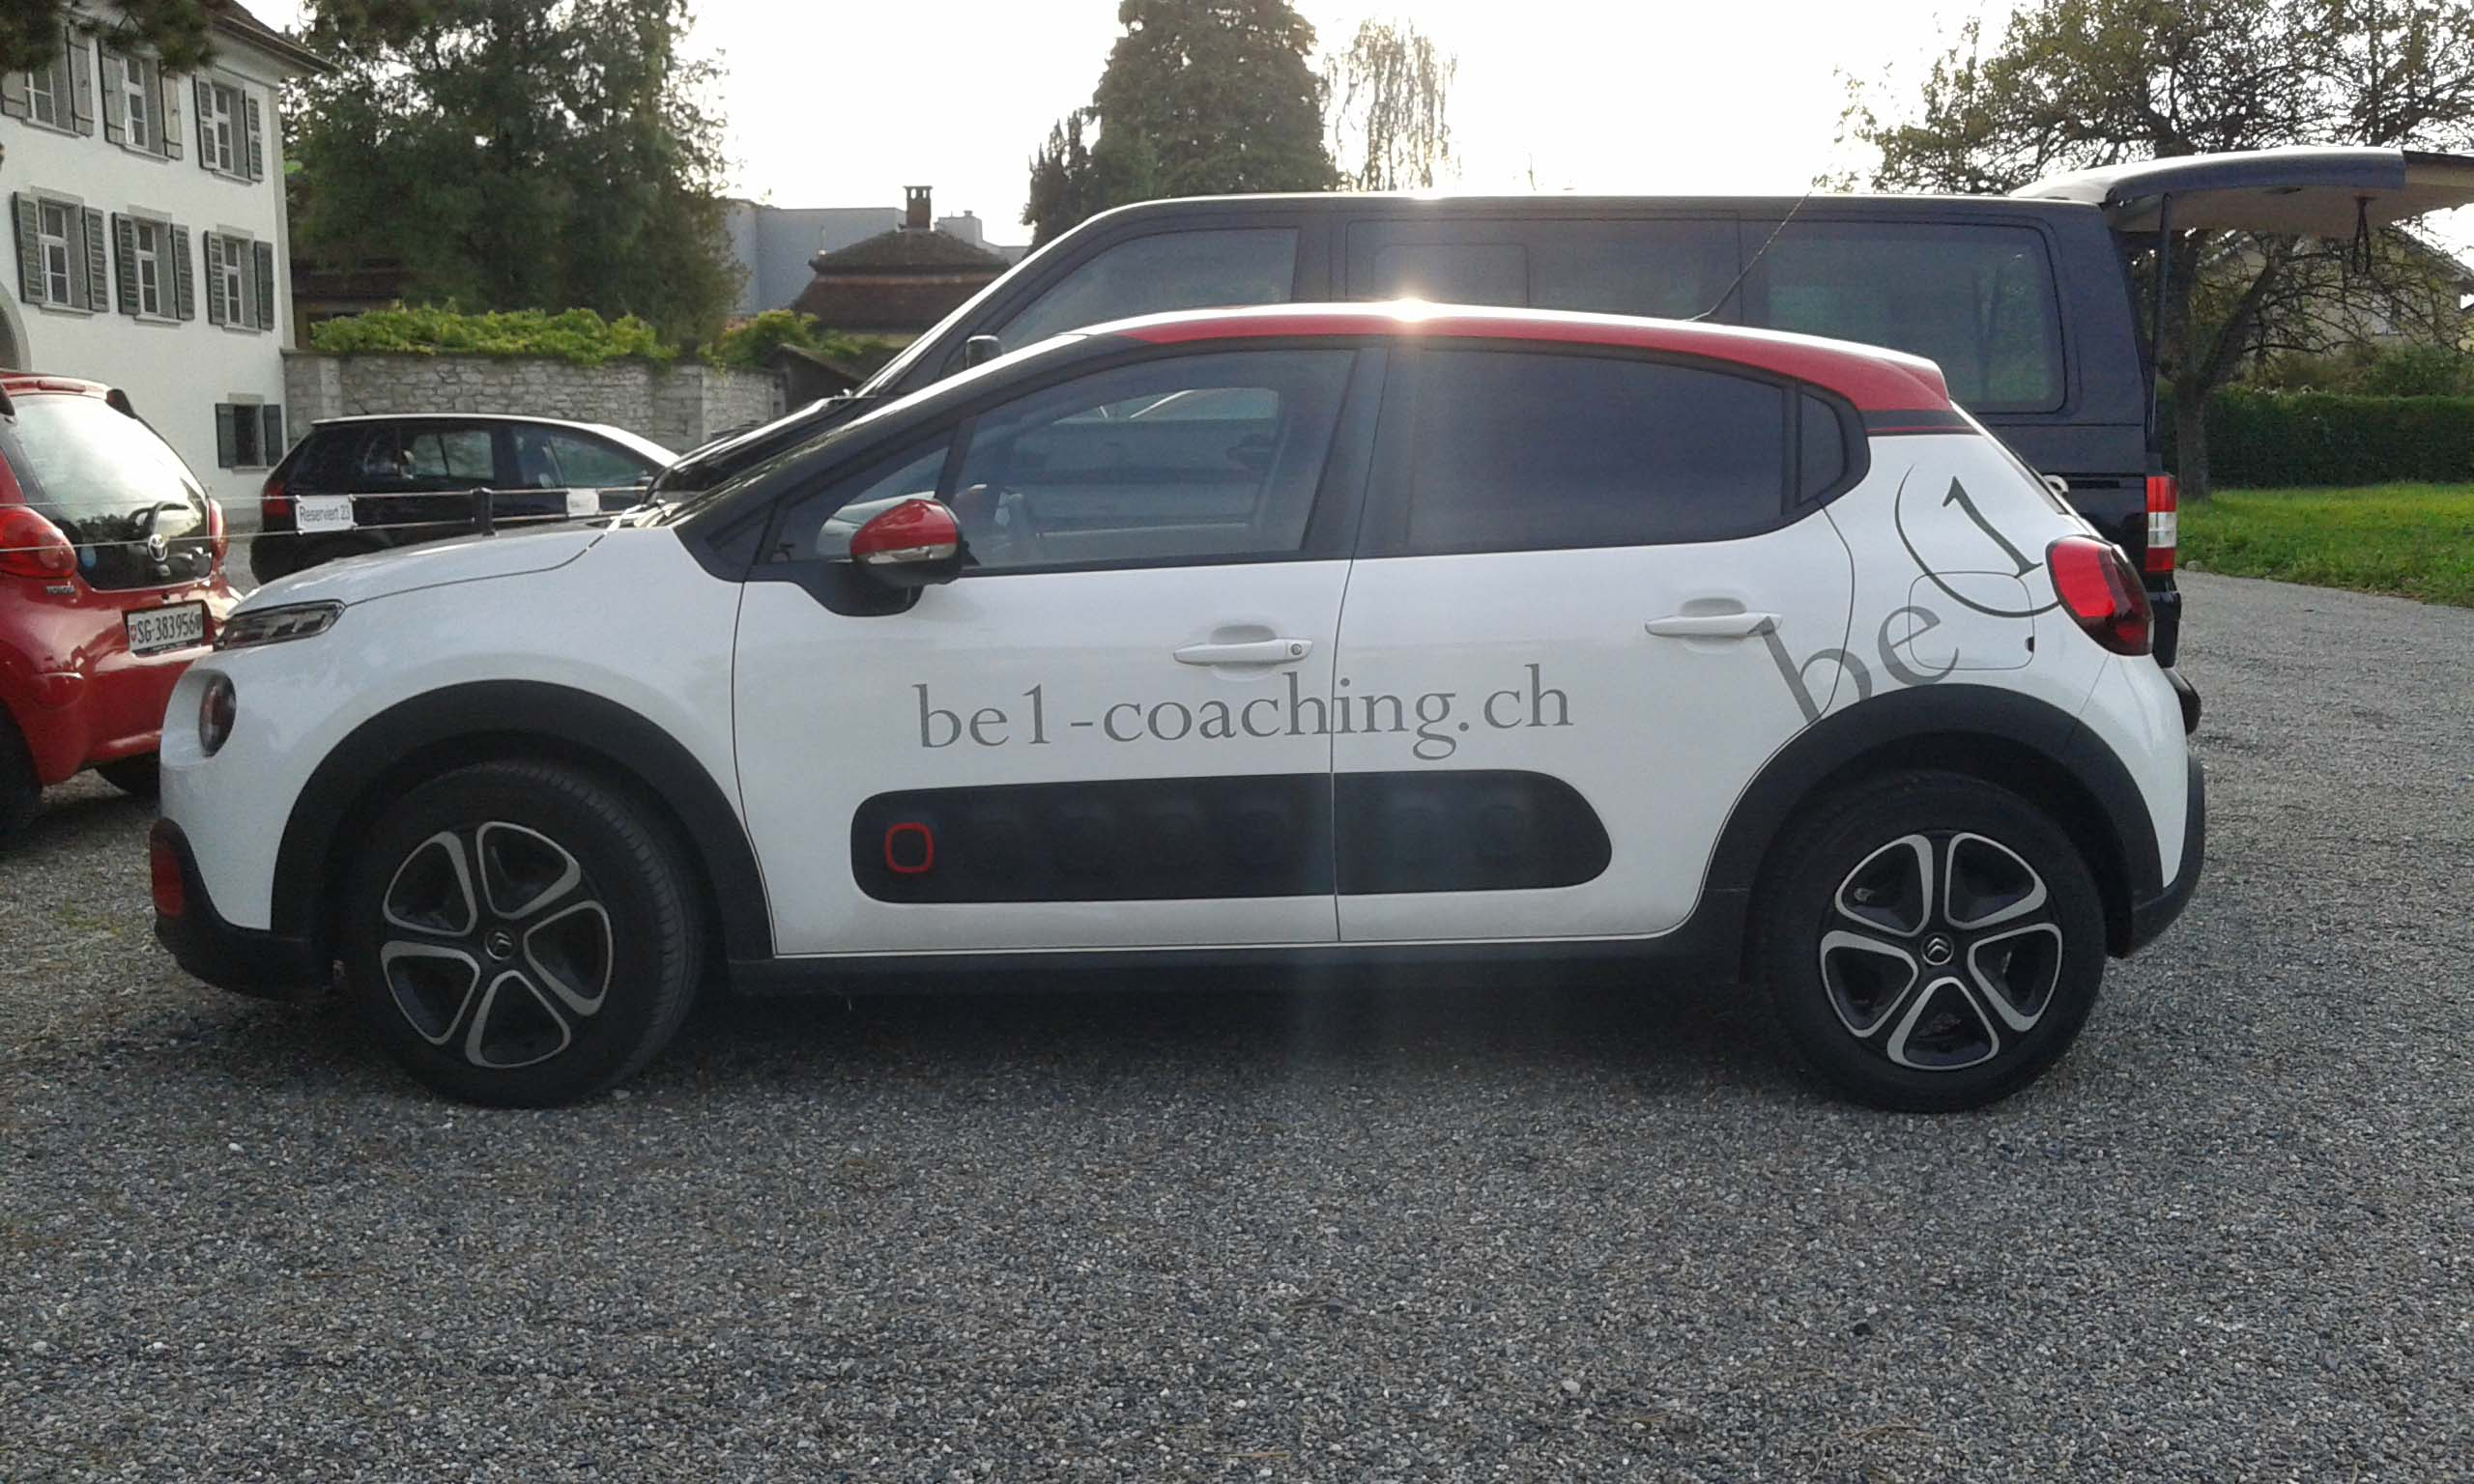 be1-coaching.ch